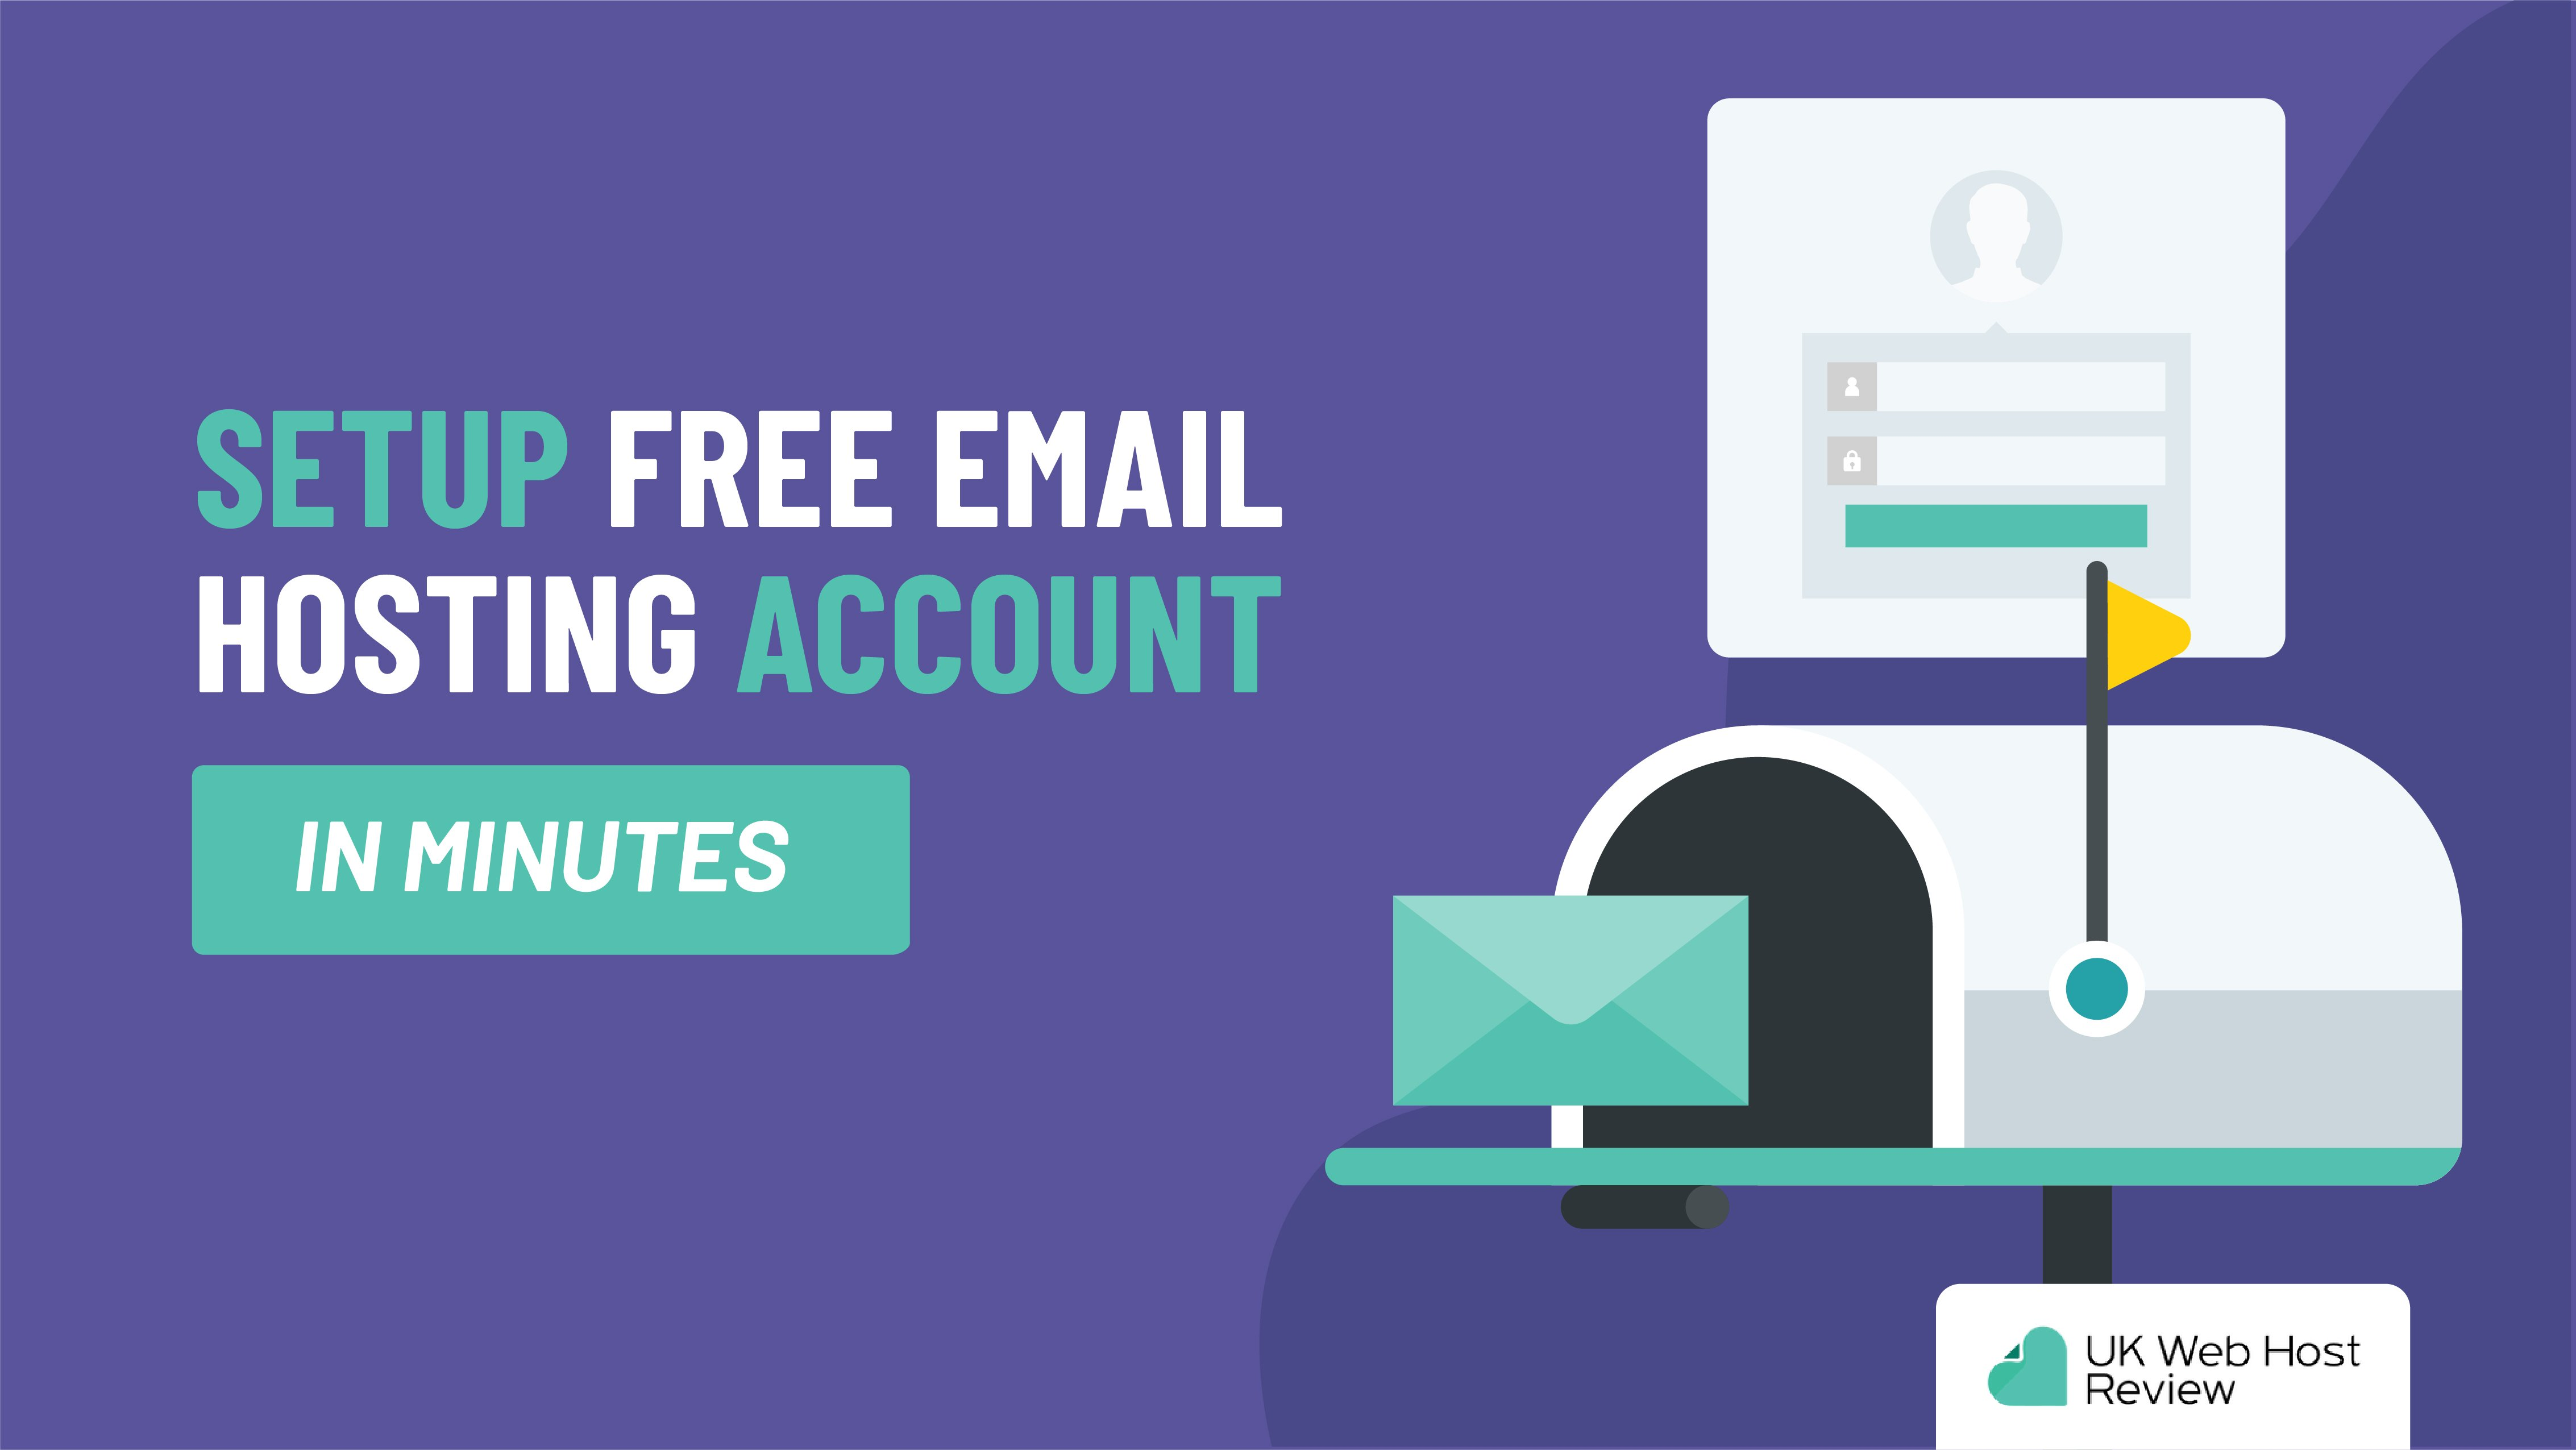 Setup Free Email Hosting Account in Minutes